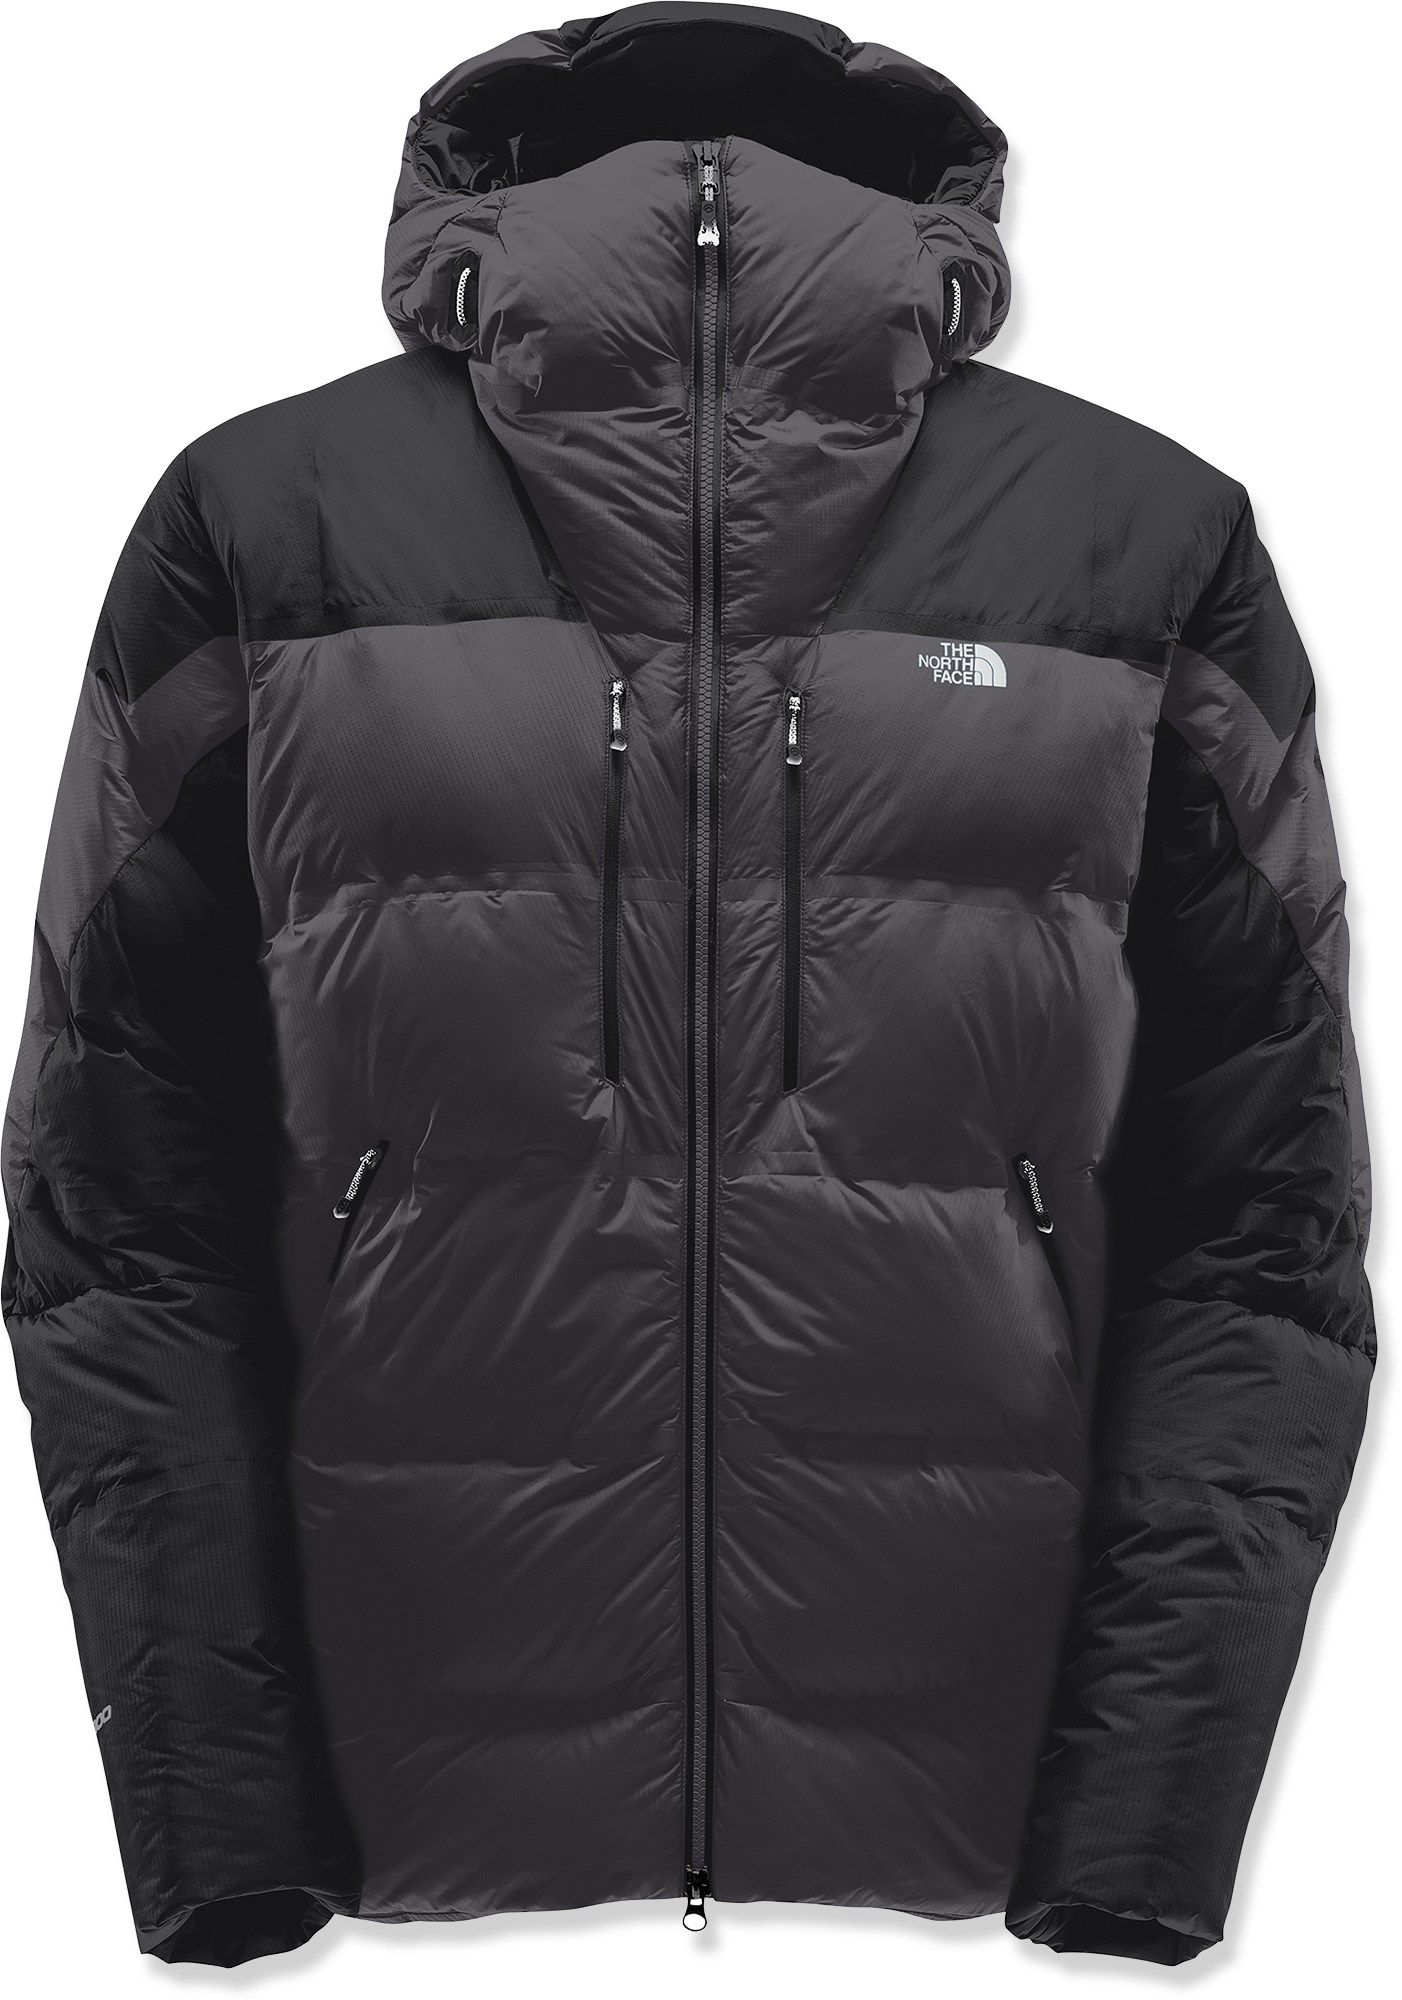 83c6b76a3530 The North Face Male Summit L6 Down Jacket - Men s